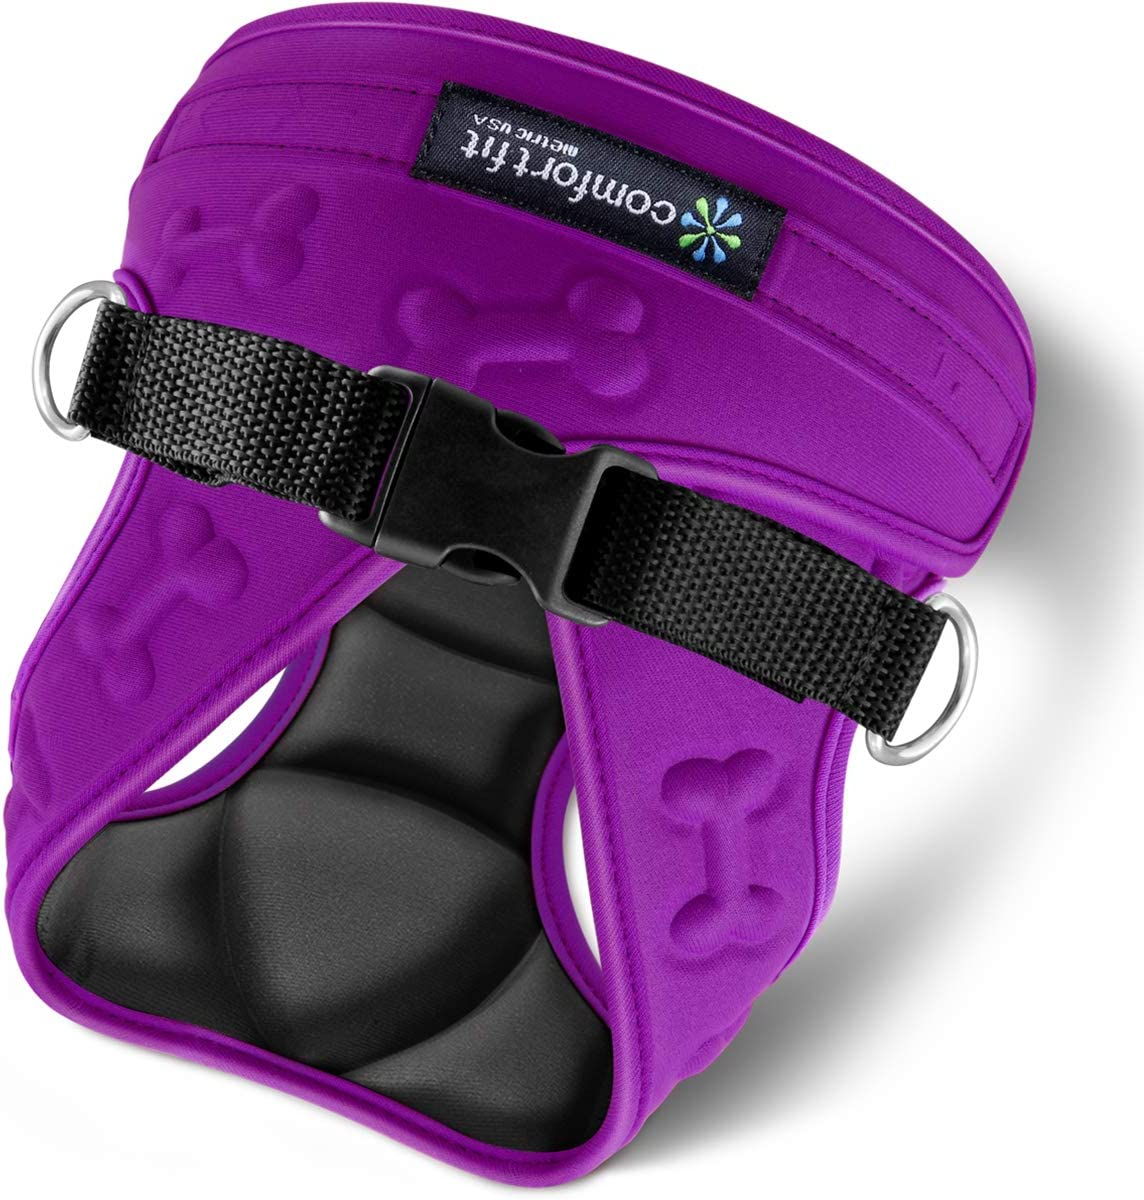 metric USA Comfort Fit Max 44% [Alternative dealer] OFF Step in Dog O to on Take Easy Put Harness